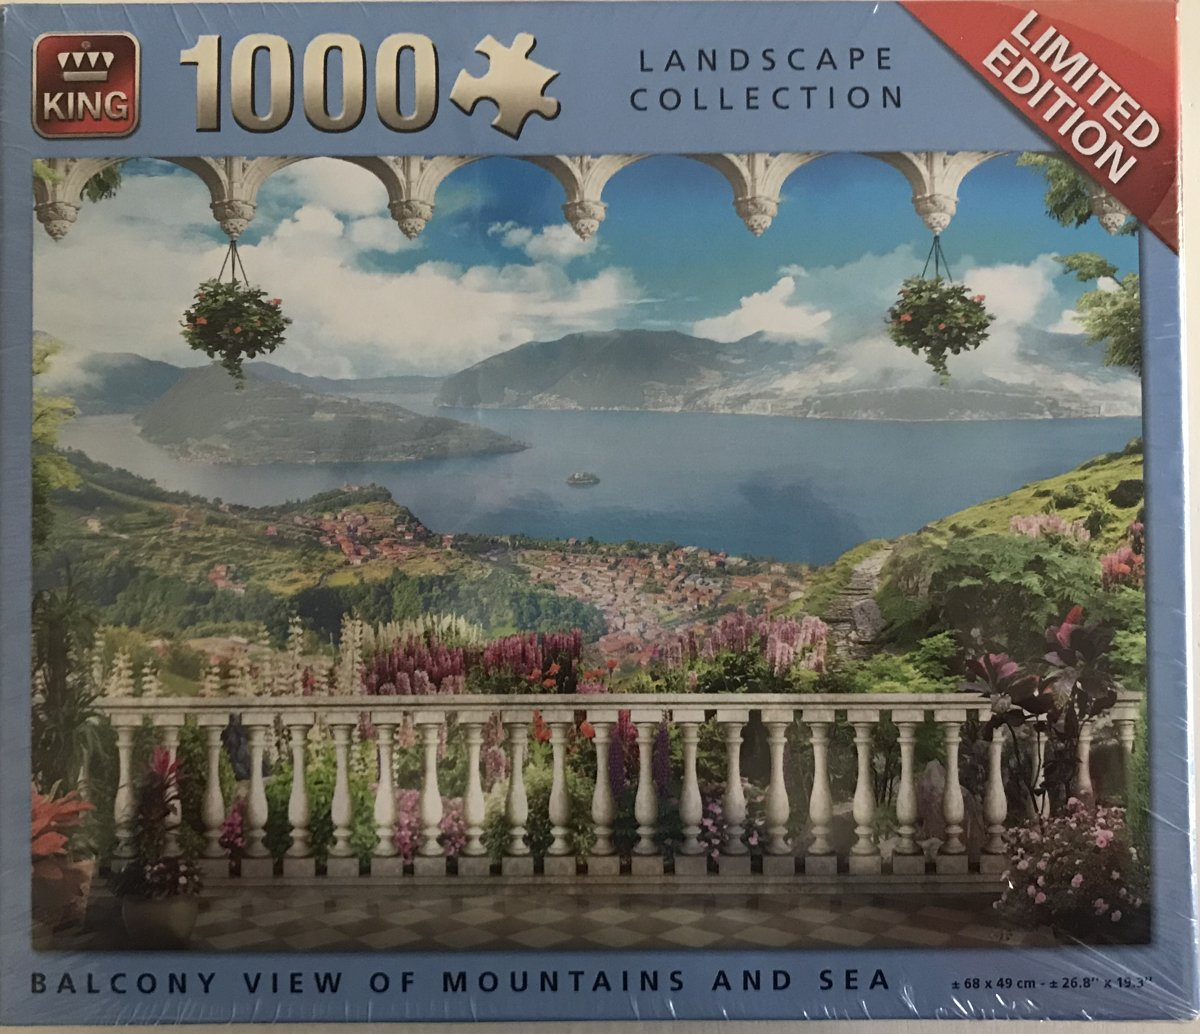 King puzzel 1000 stukjes landscape collection balcony view with mountains and sea, balkon uitzicht met bergen en zee